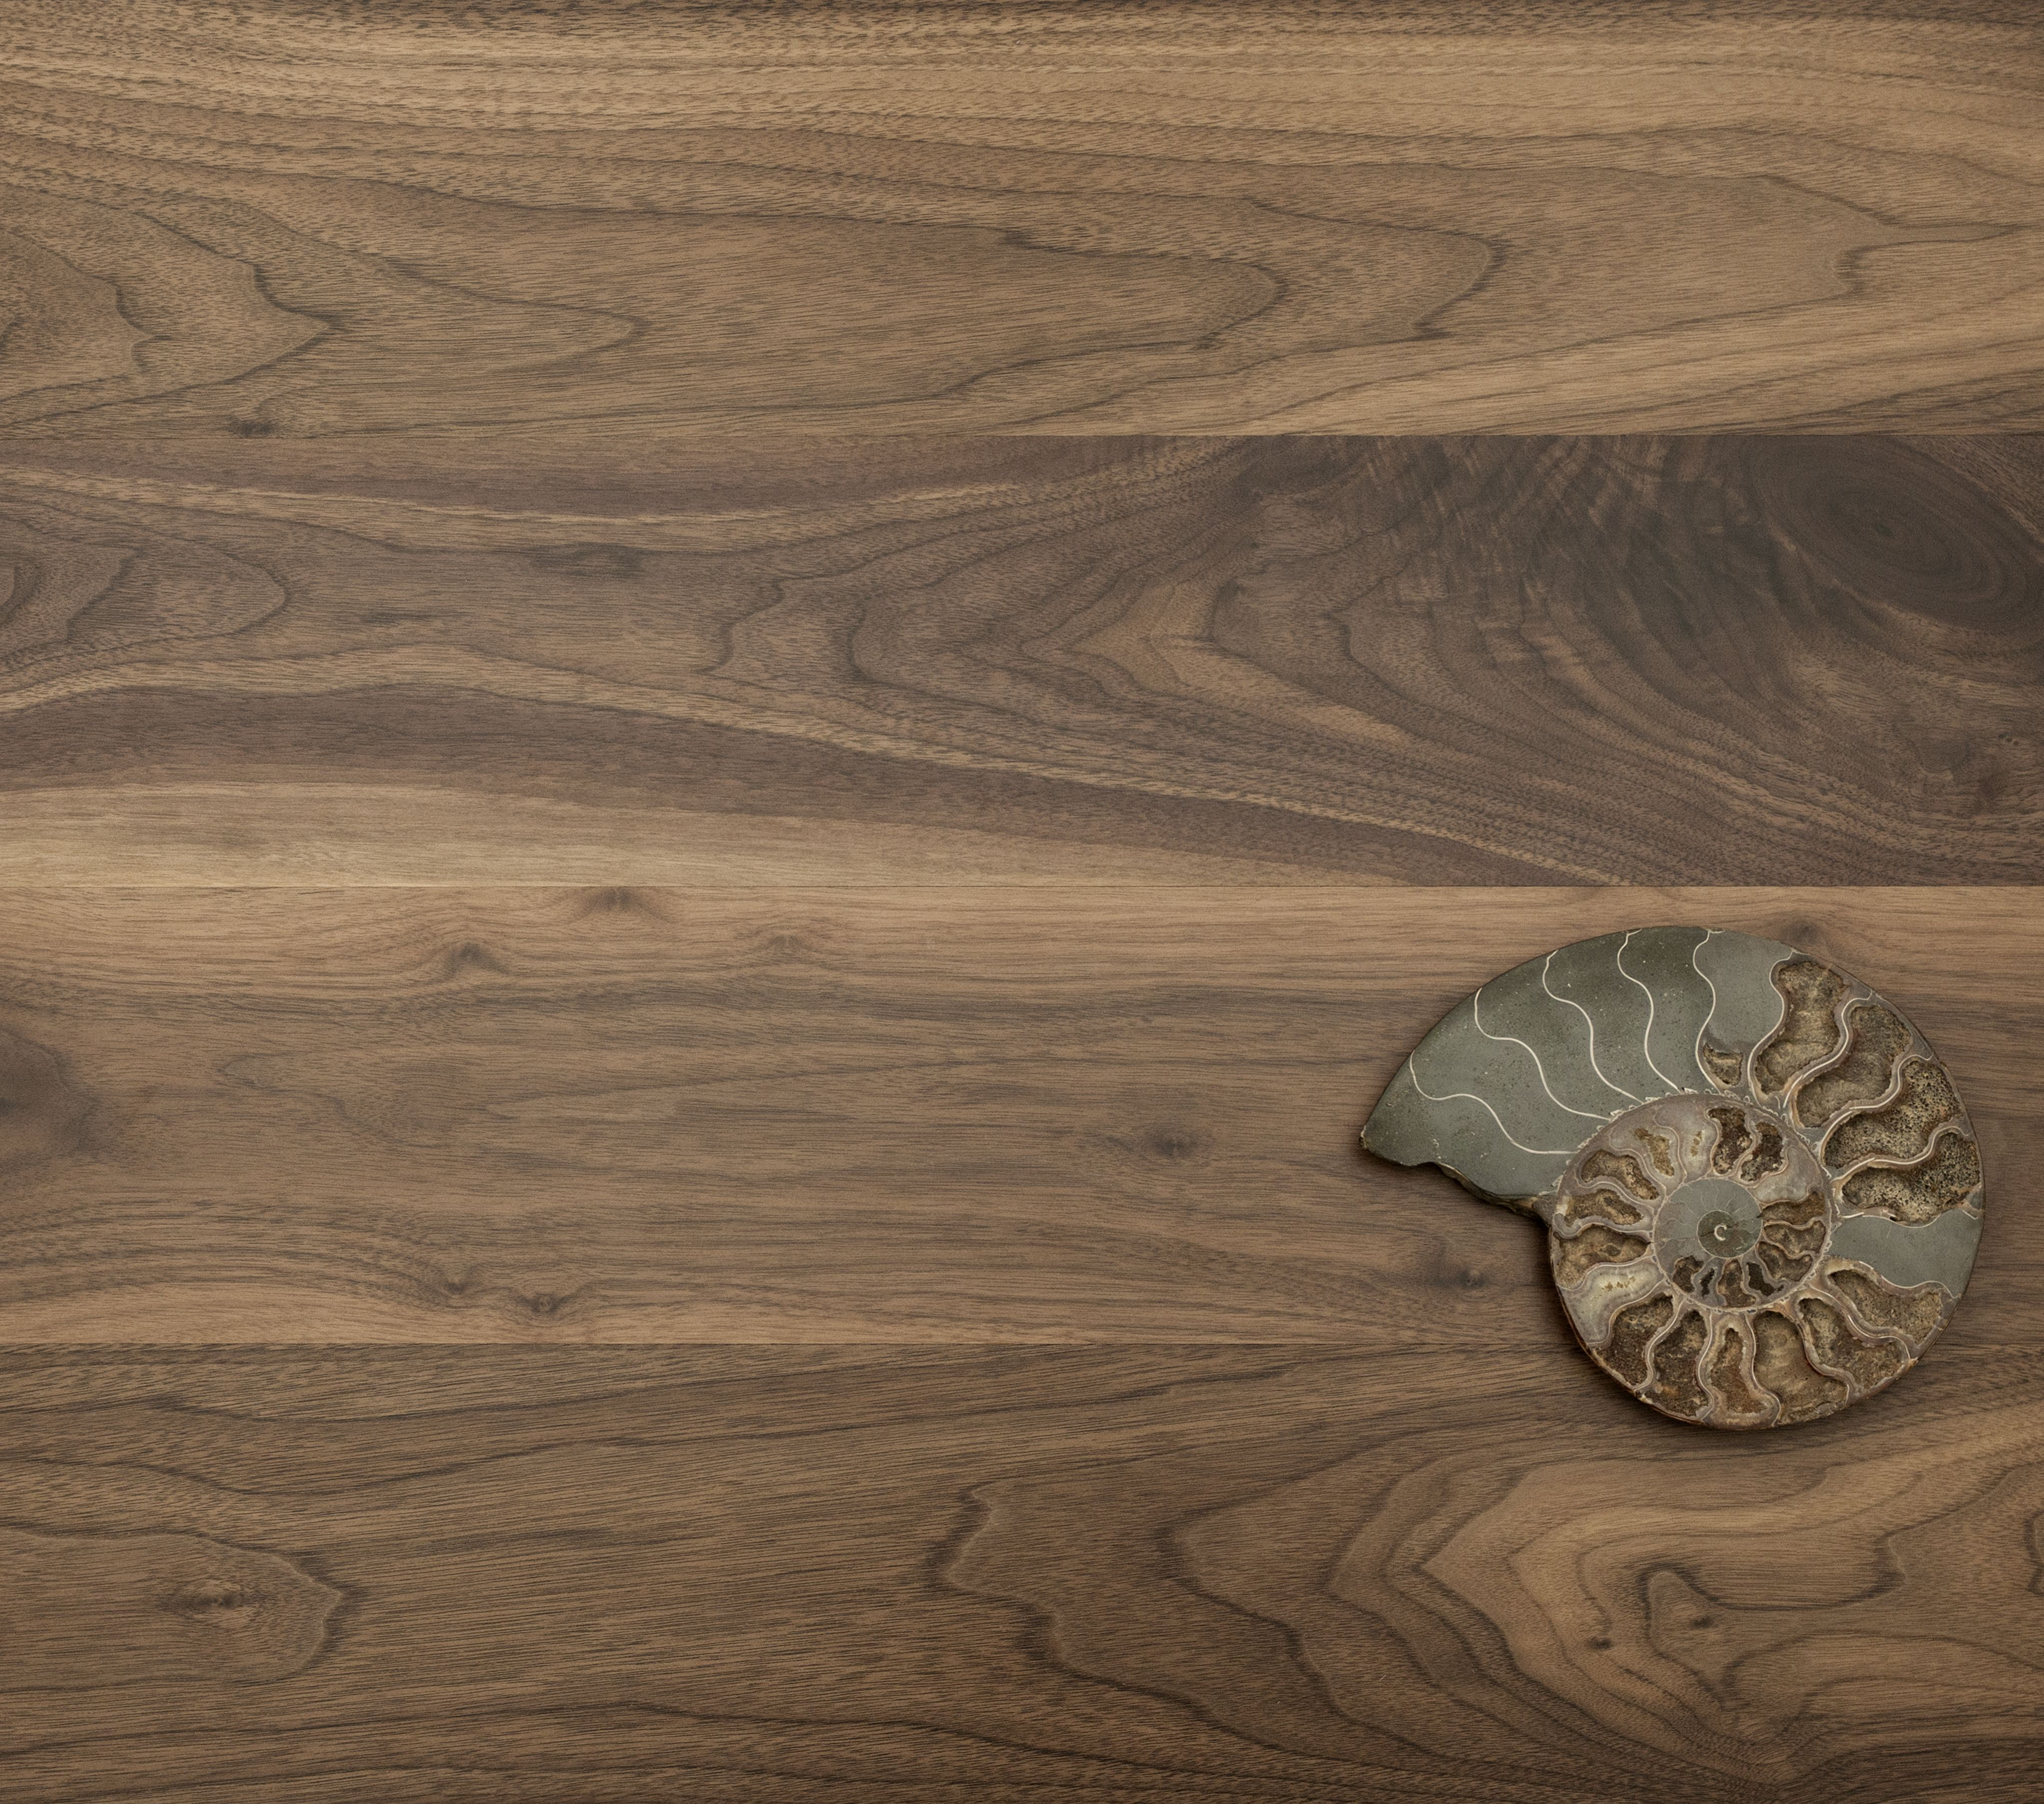 Eddie Bauer Hardwood Floors Town  Country Plank Natural - Black walnut hardwood flooring